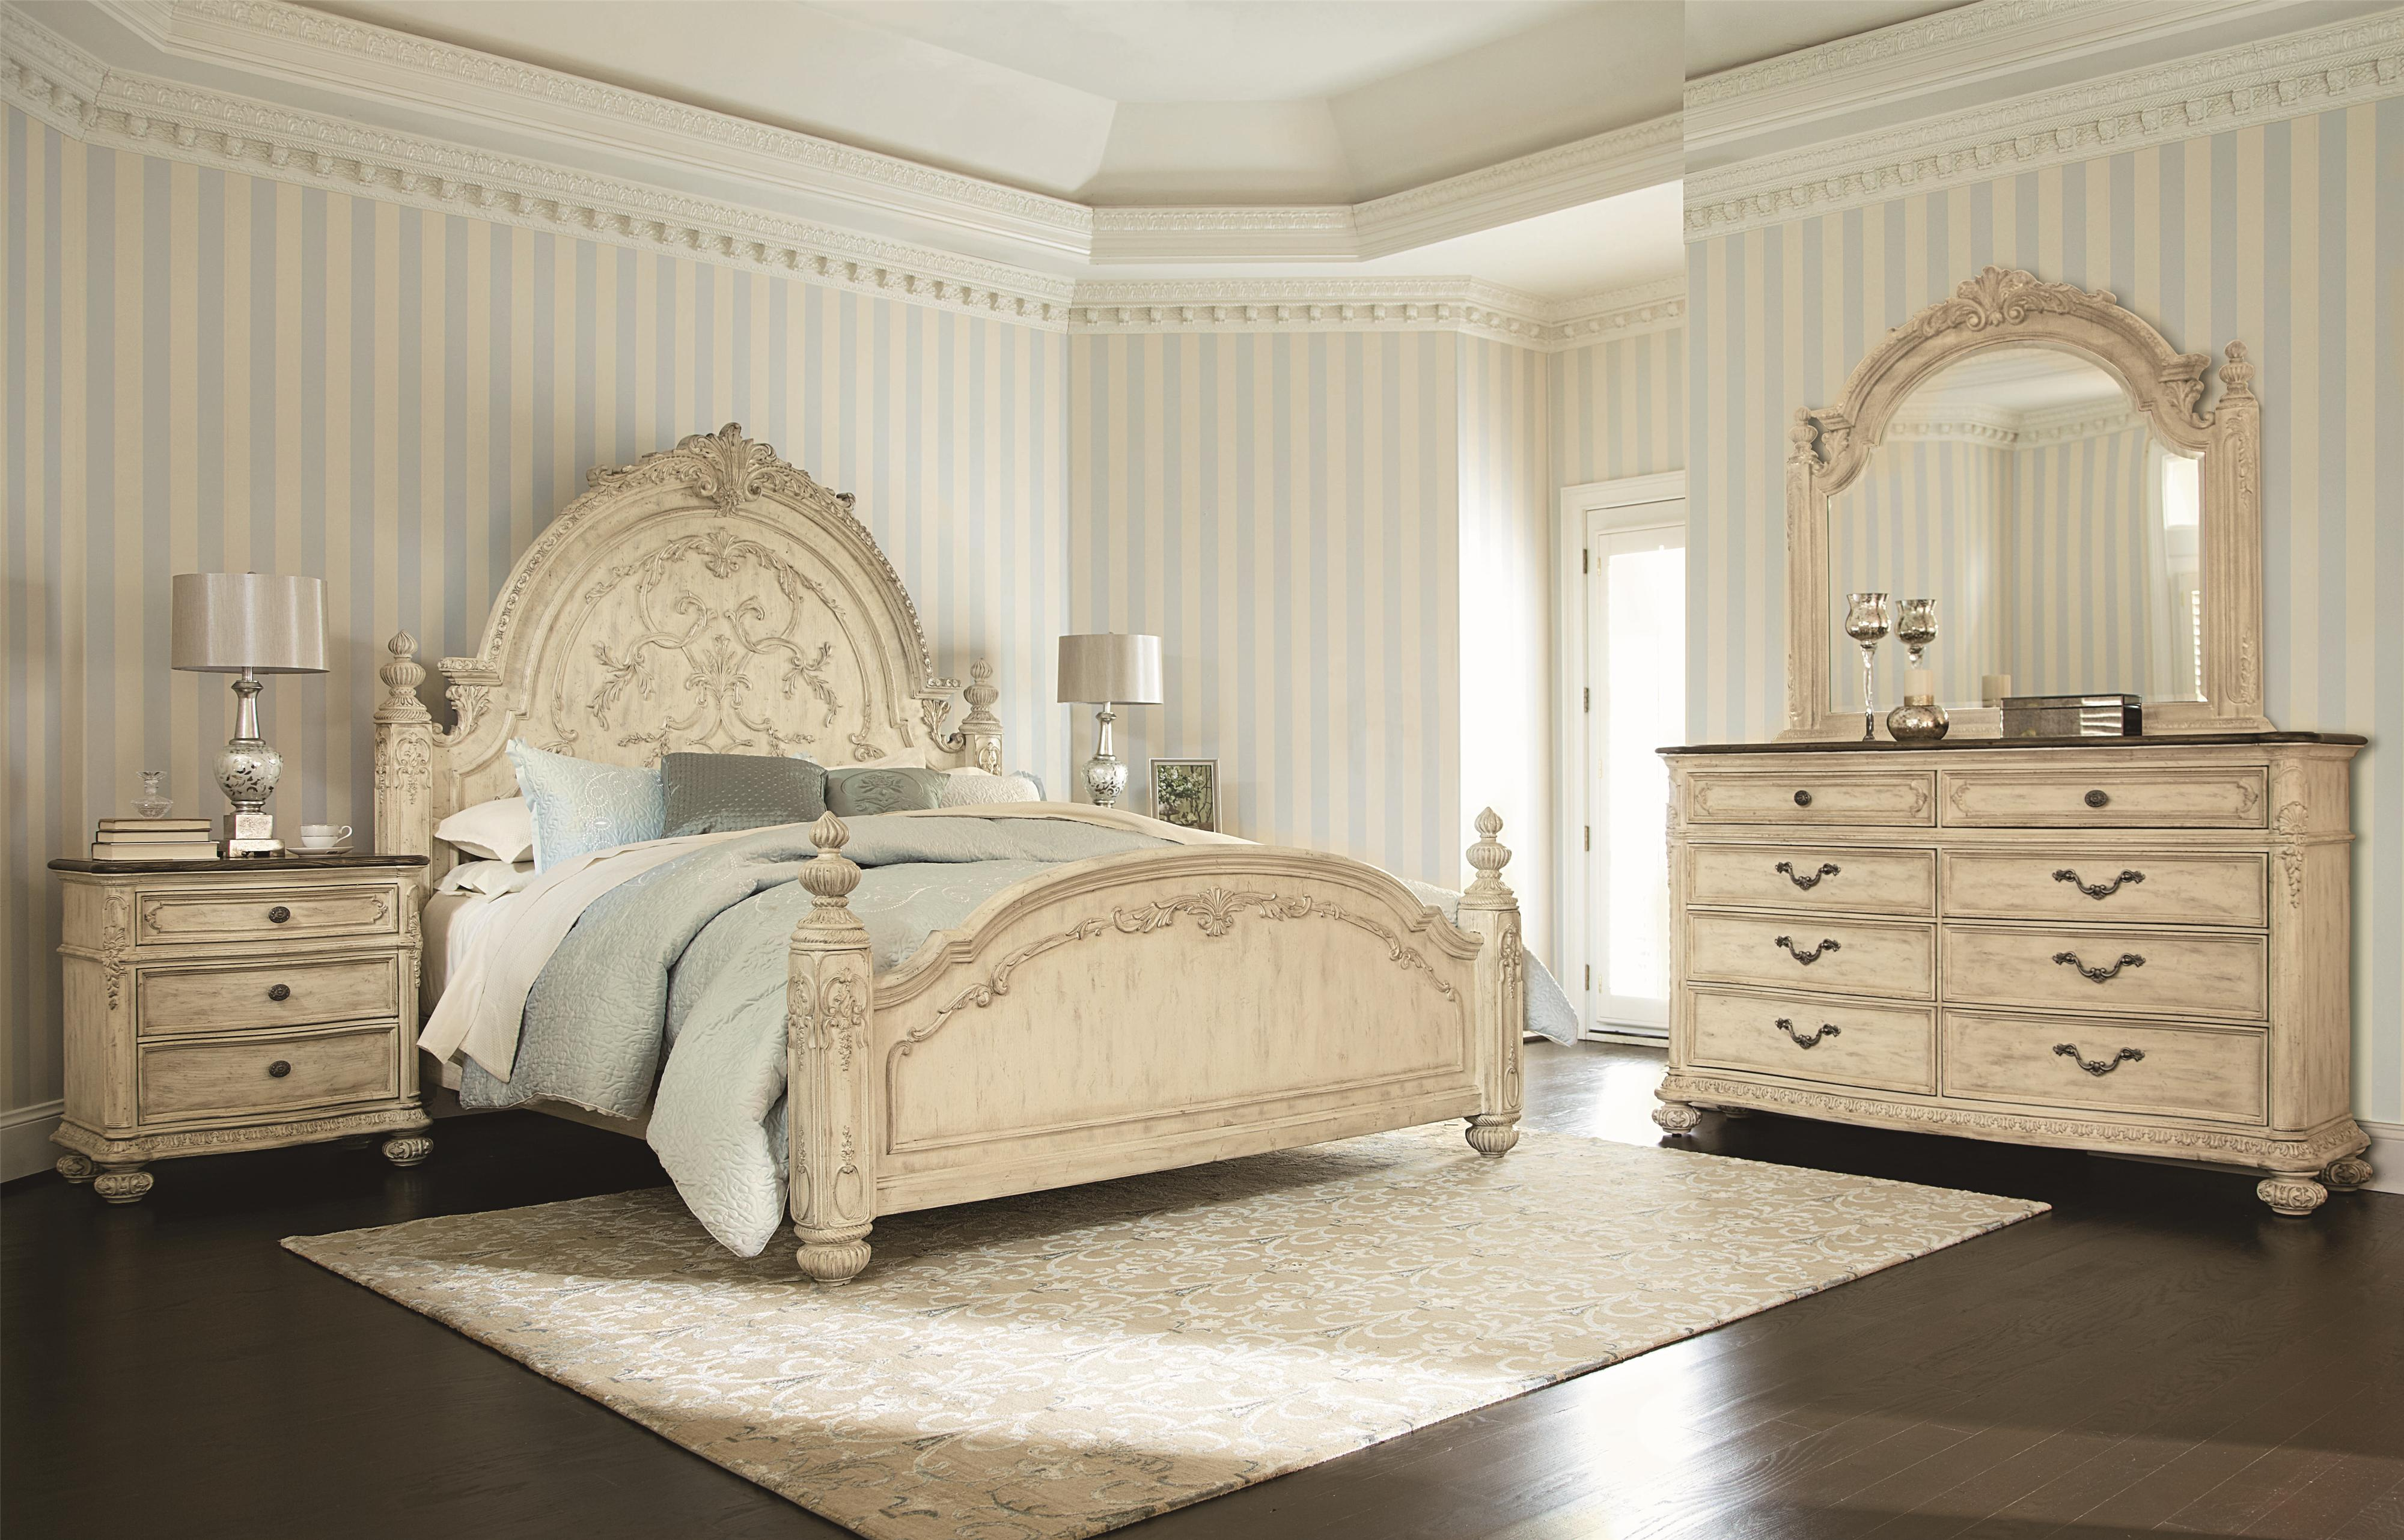 Jessica mcclintock home the boutique collection 217w by american drew stoney creek for American drew oak bedroom furniture